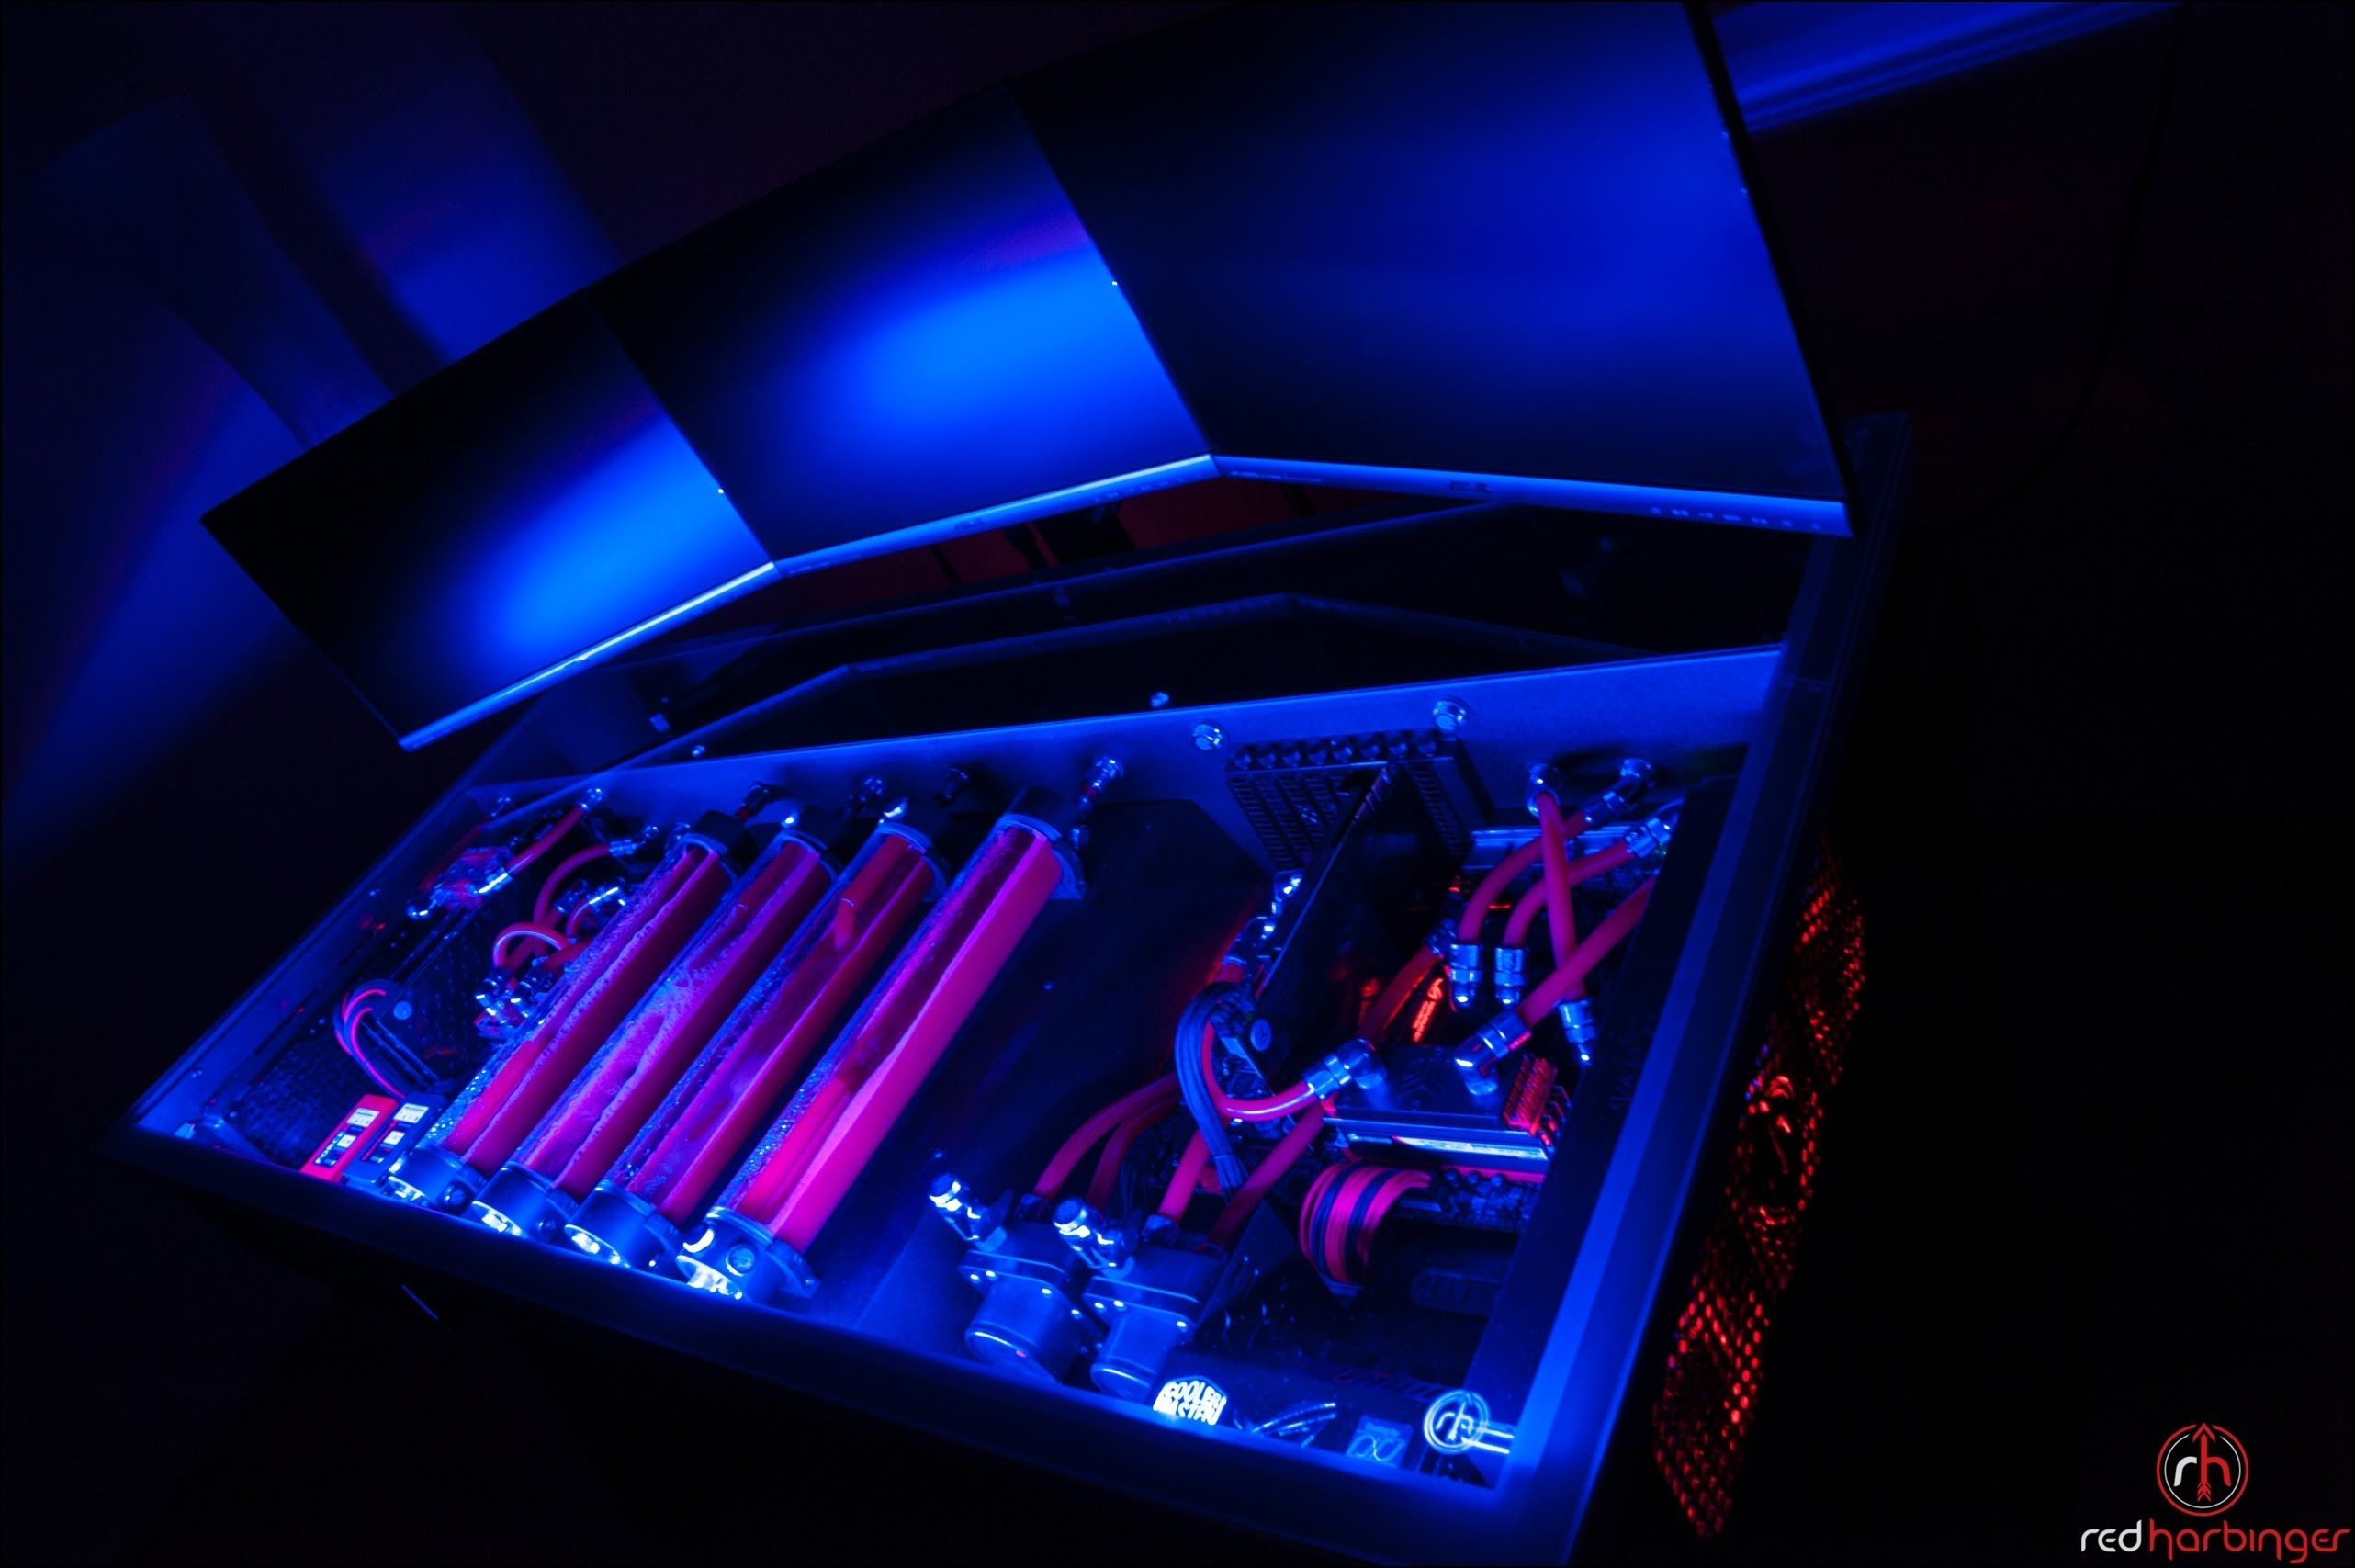 Cross By Red Harbinger Finished Liquid Cooled Computer Desk